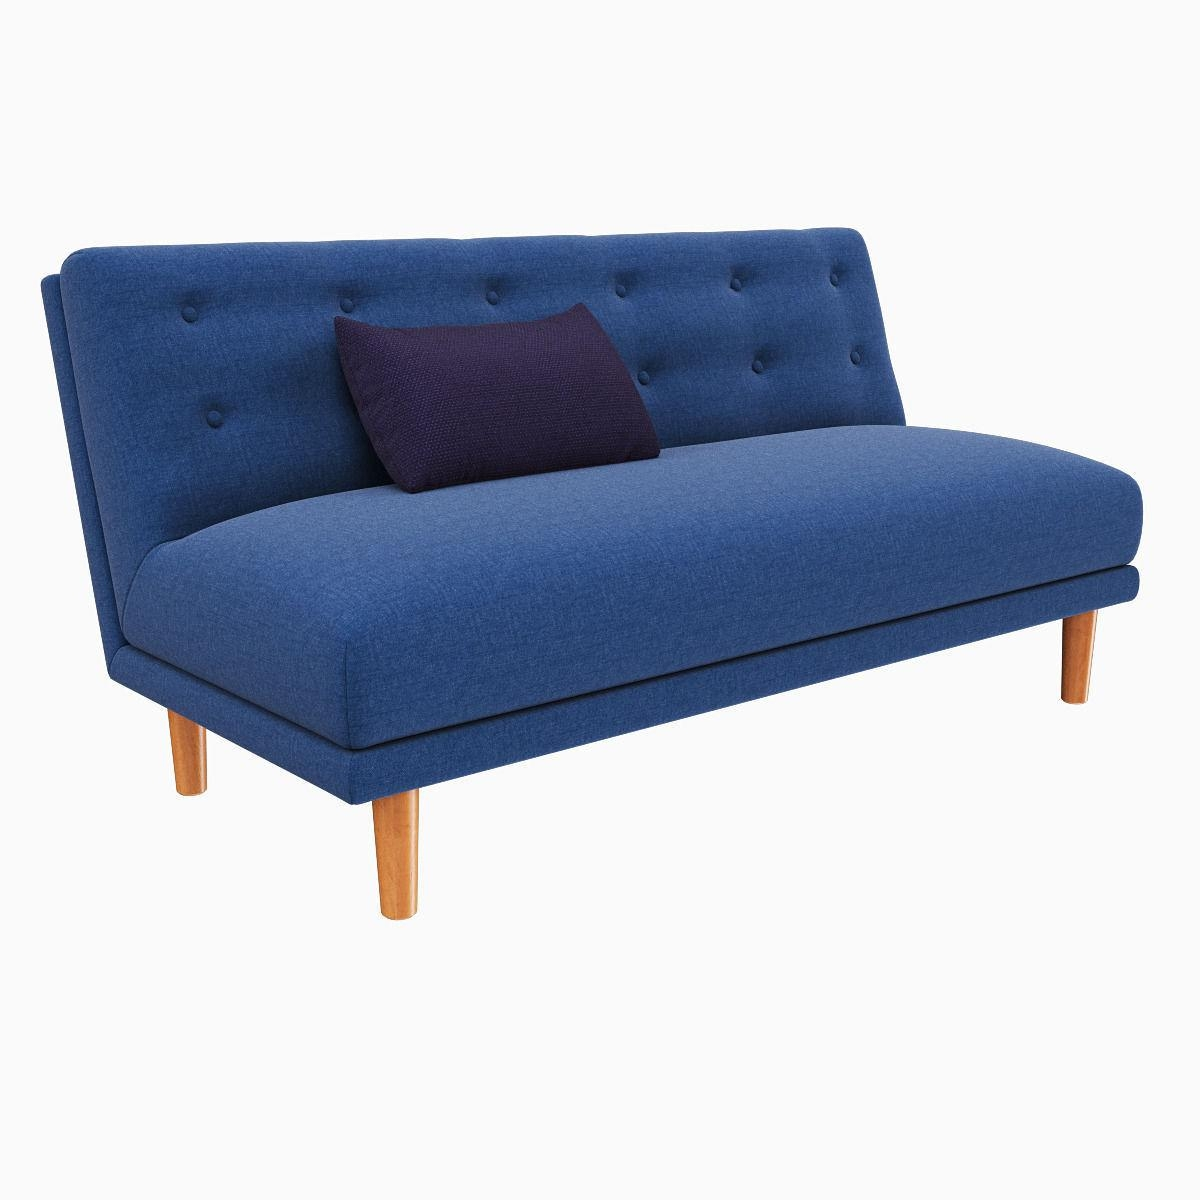 West Elm Rounded Retro Armless Sofa 3D Model Max Obj Fbx Mtl Regarding Rounded Sofa (View 3 of 20)